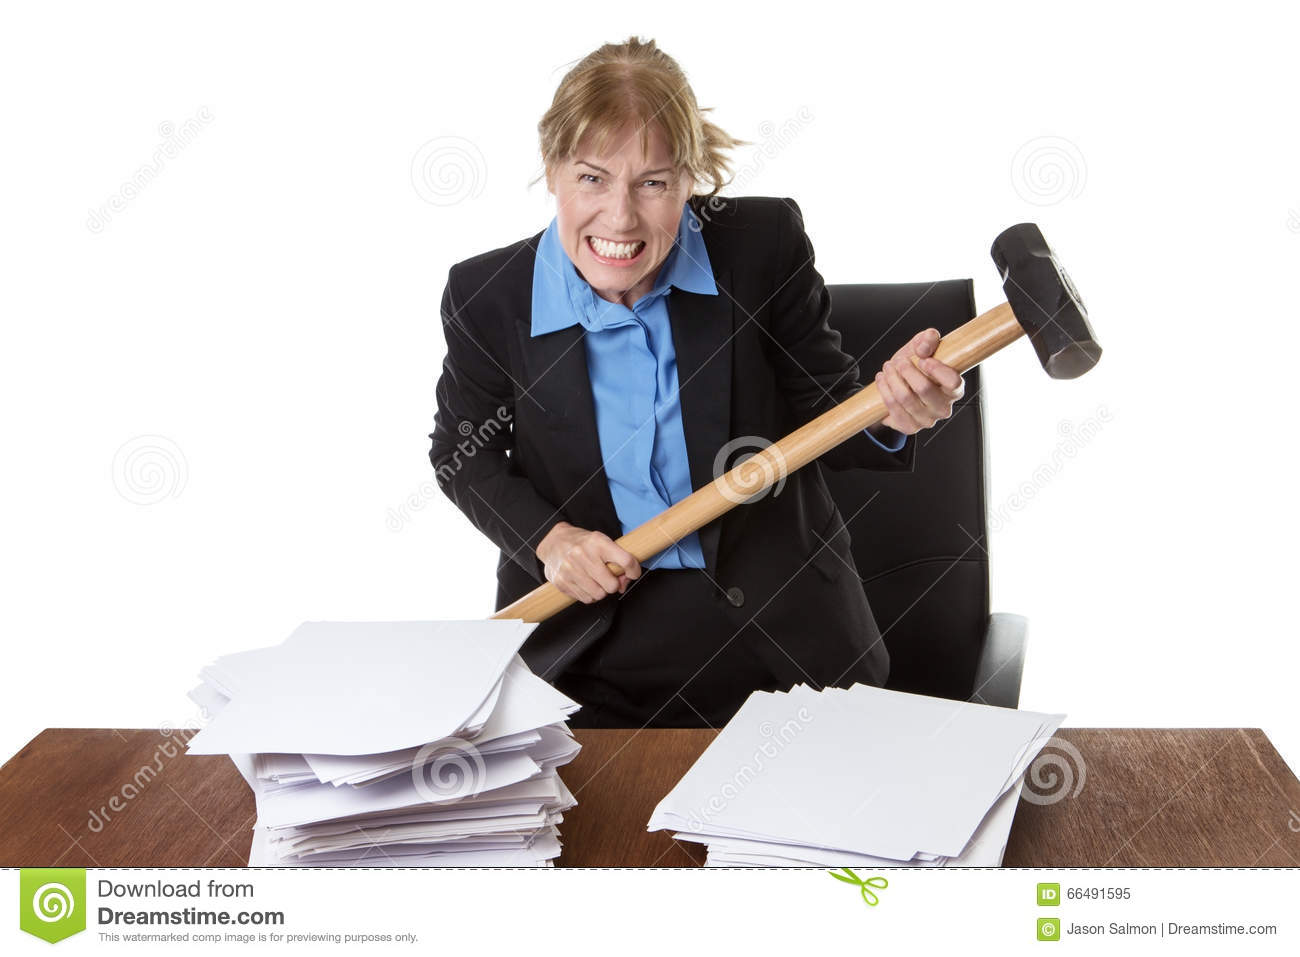 Frustrated office worker on the phone holding stock photo image - Emotional Frustration Hammer Mature Office